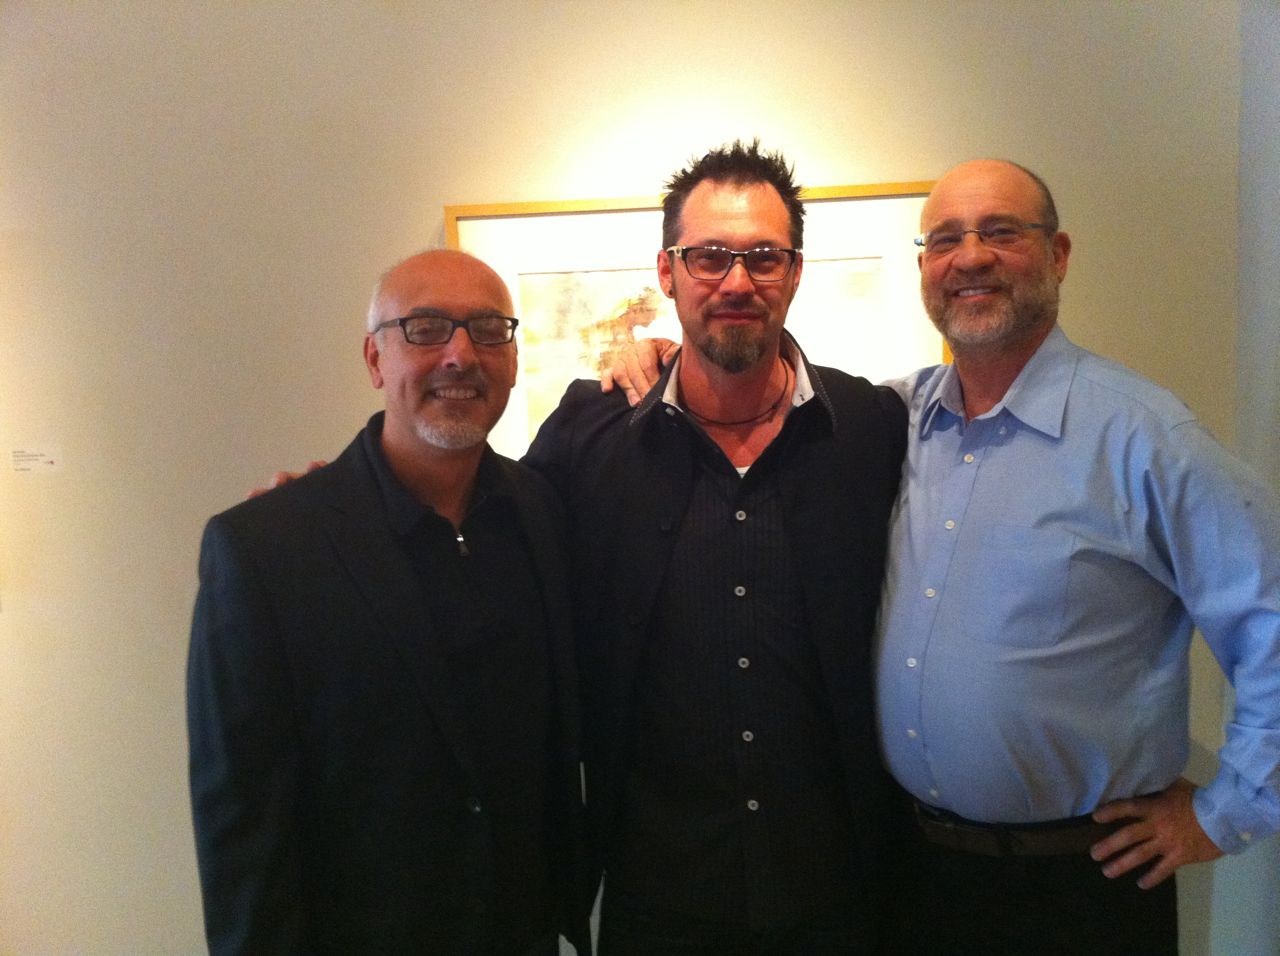 Kent Williams (middle)